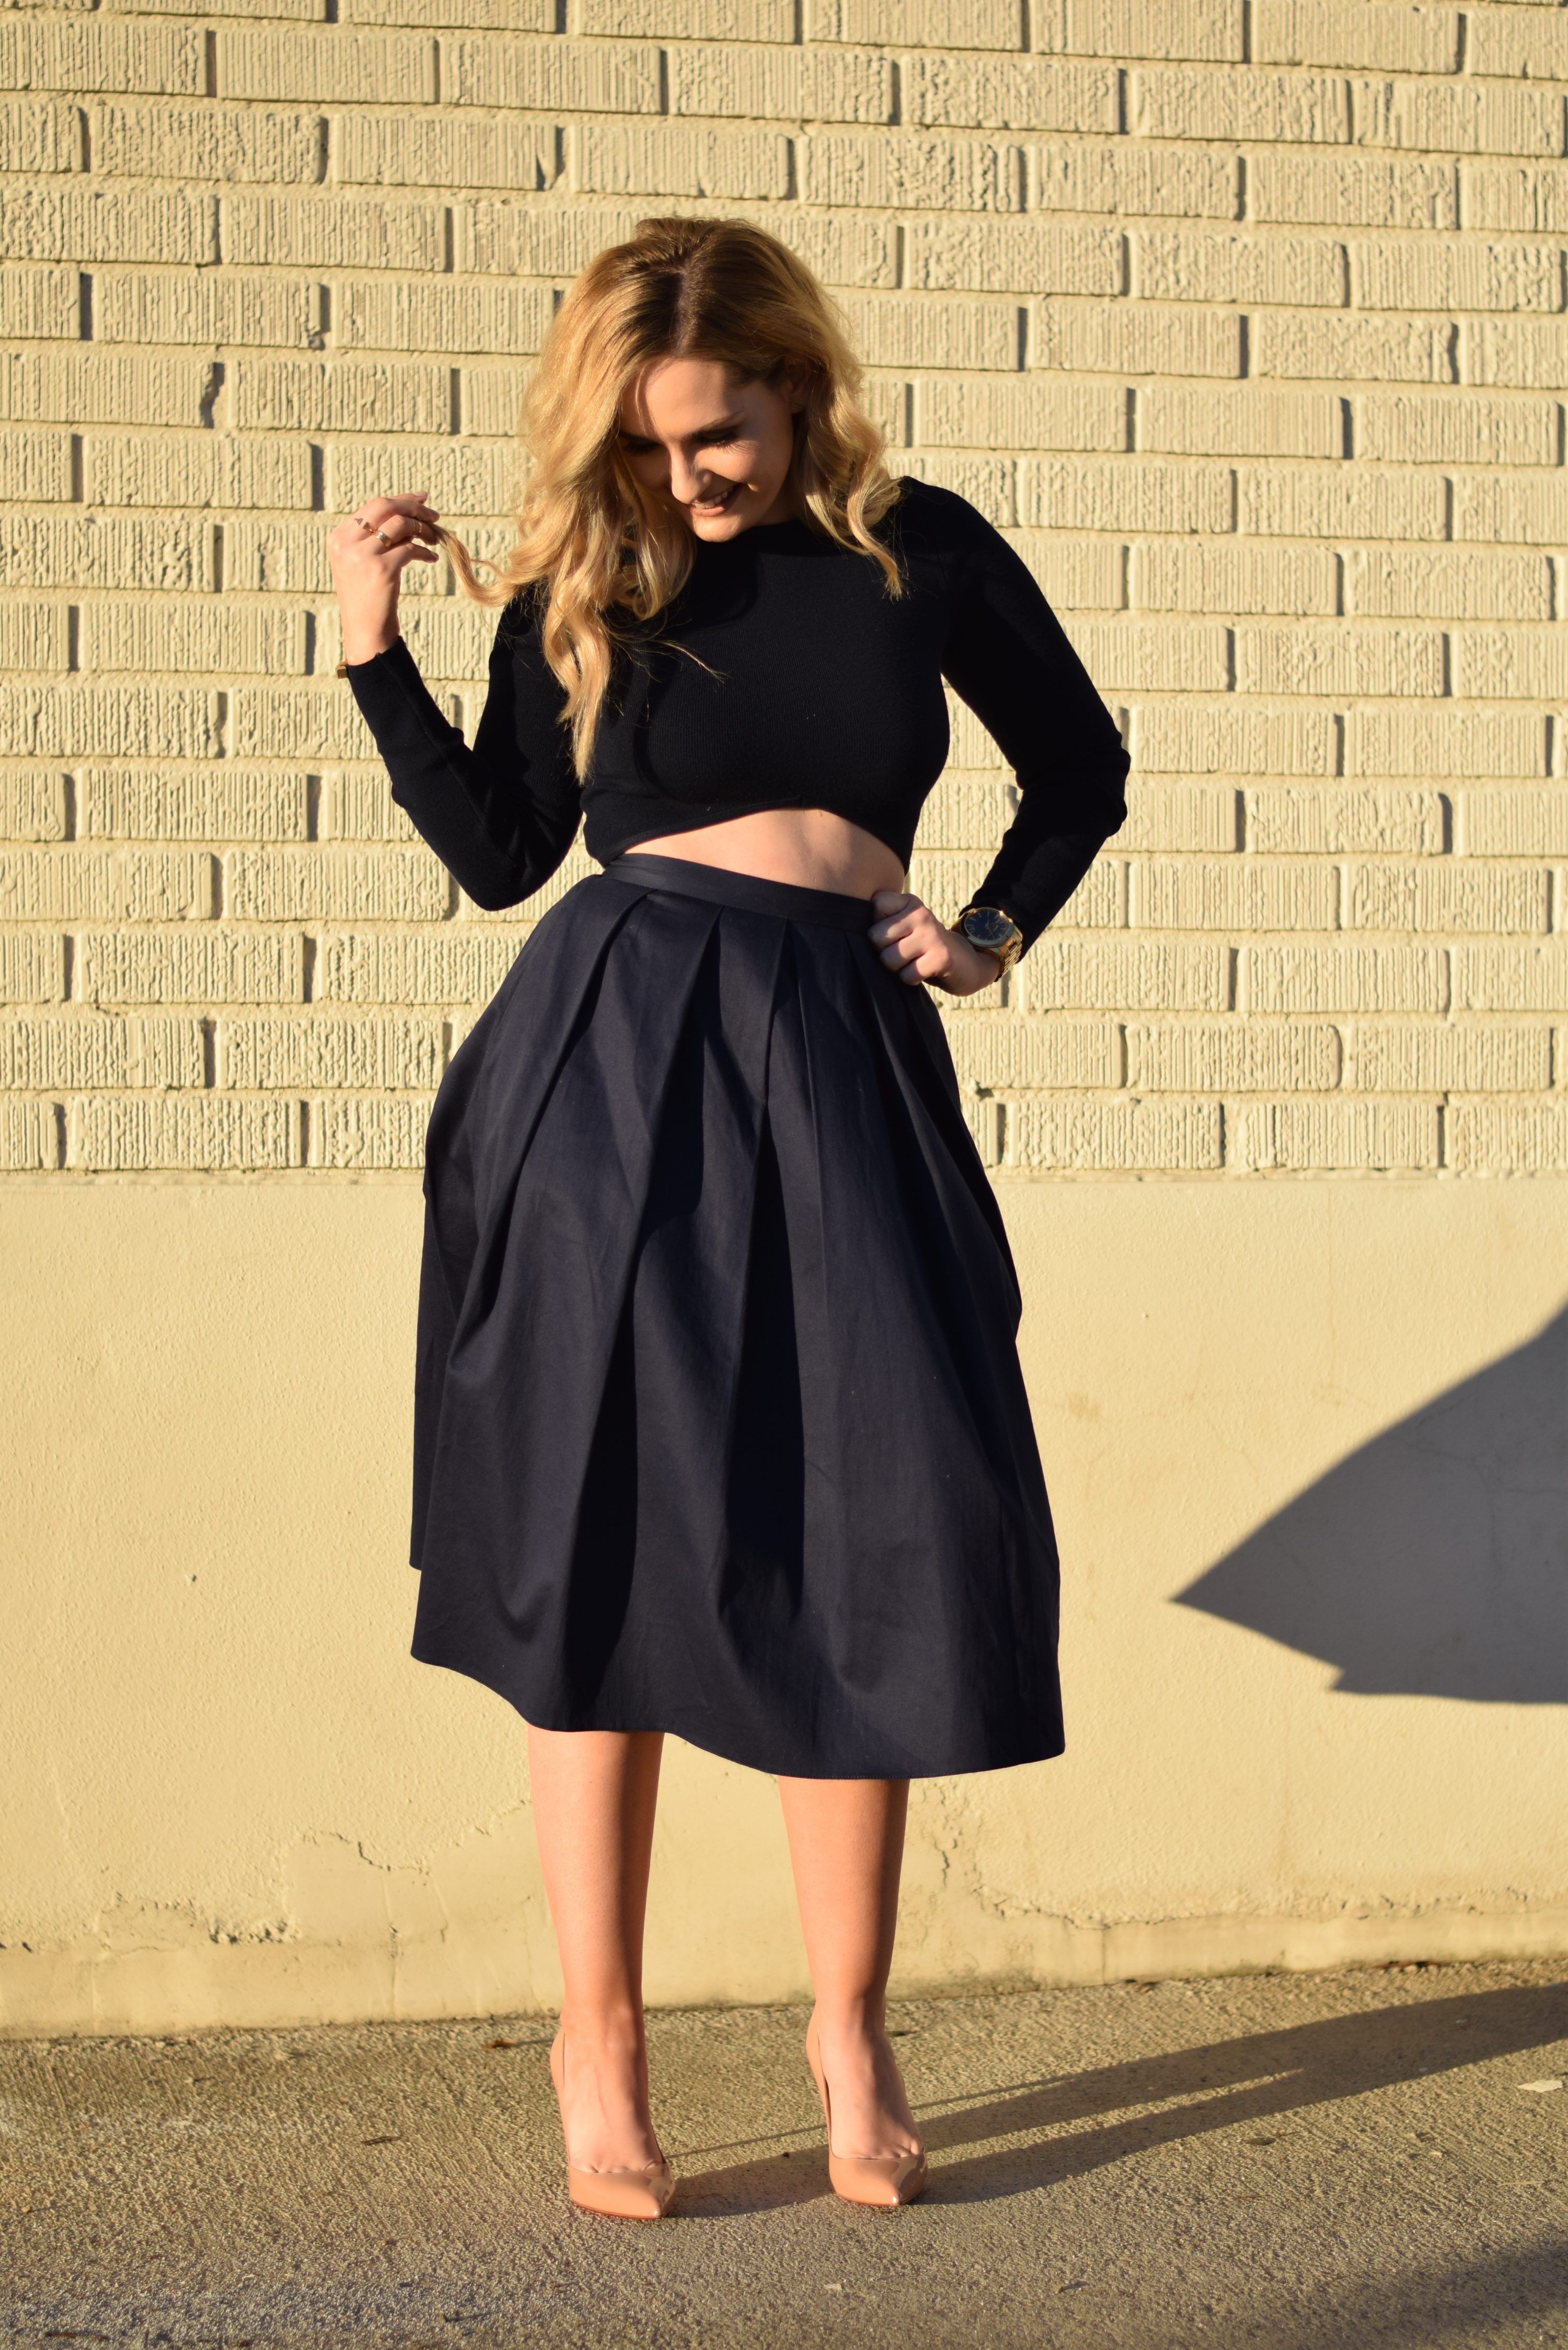 How to Style an A-Line Skirt - LaurenJaclyn.com